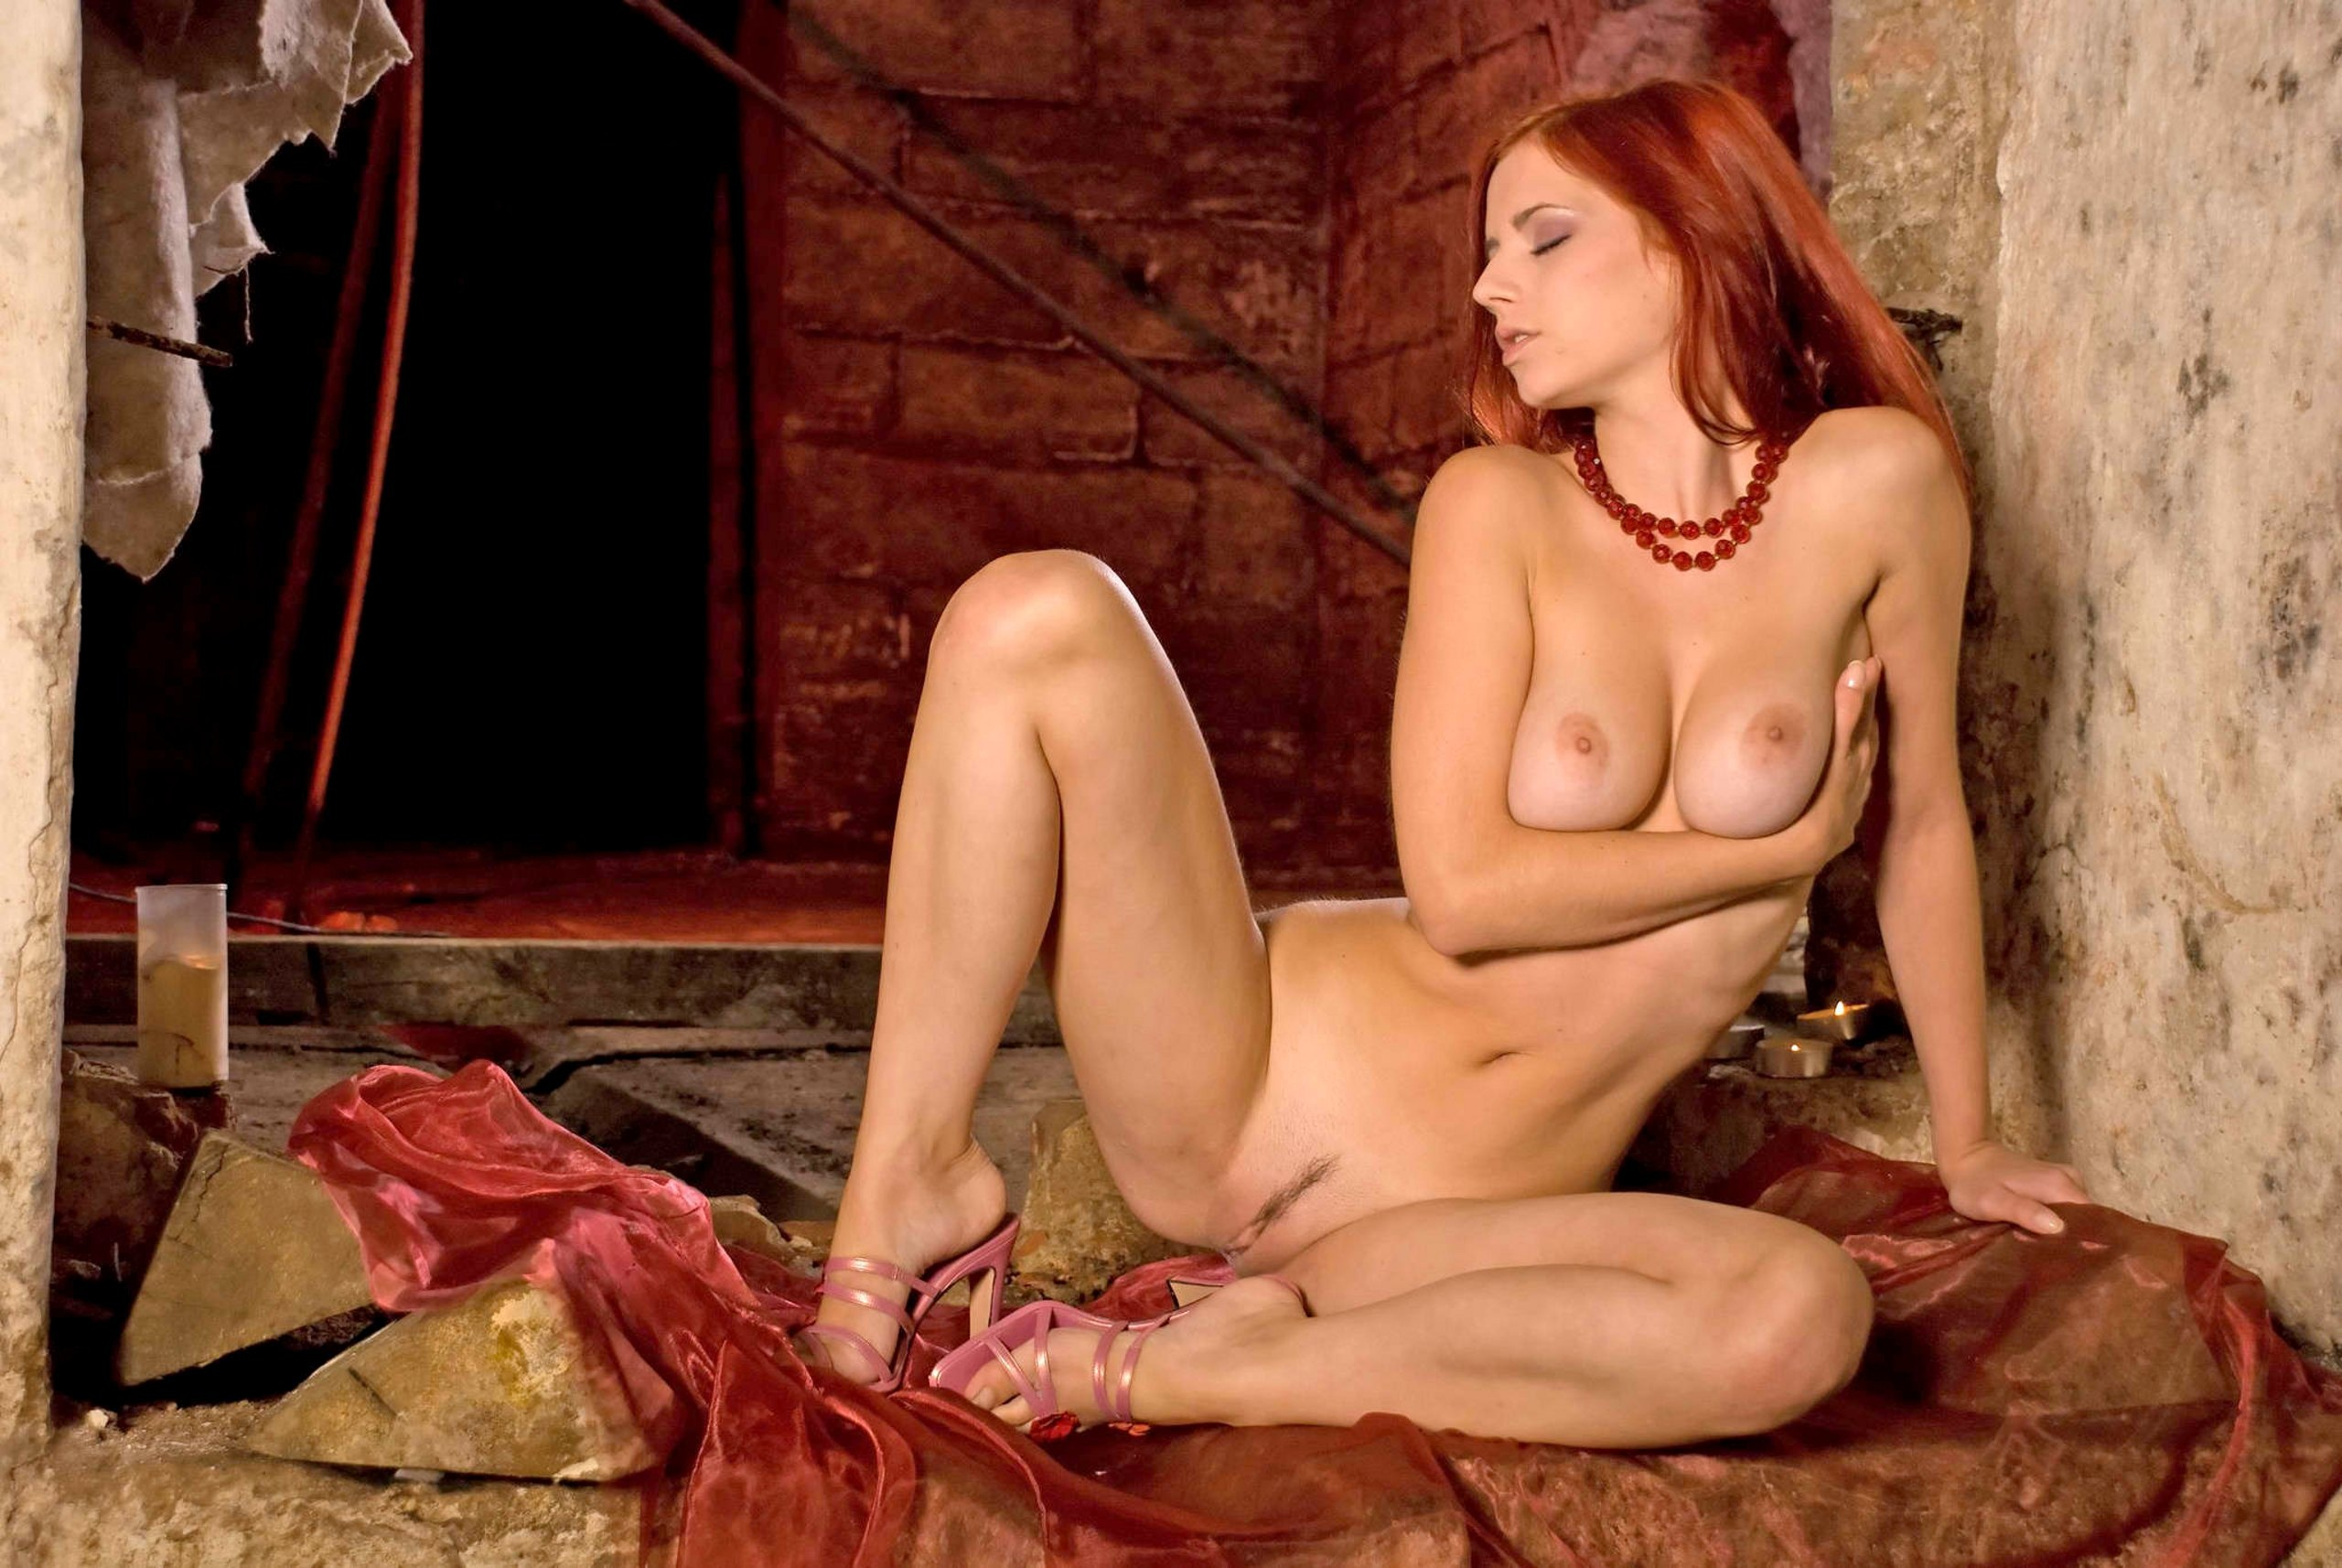 Speaking. Red hair girls nude variant